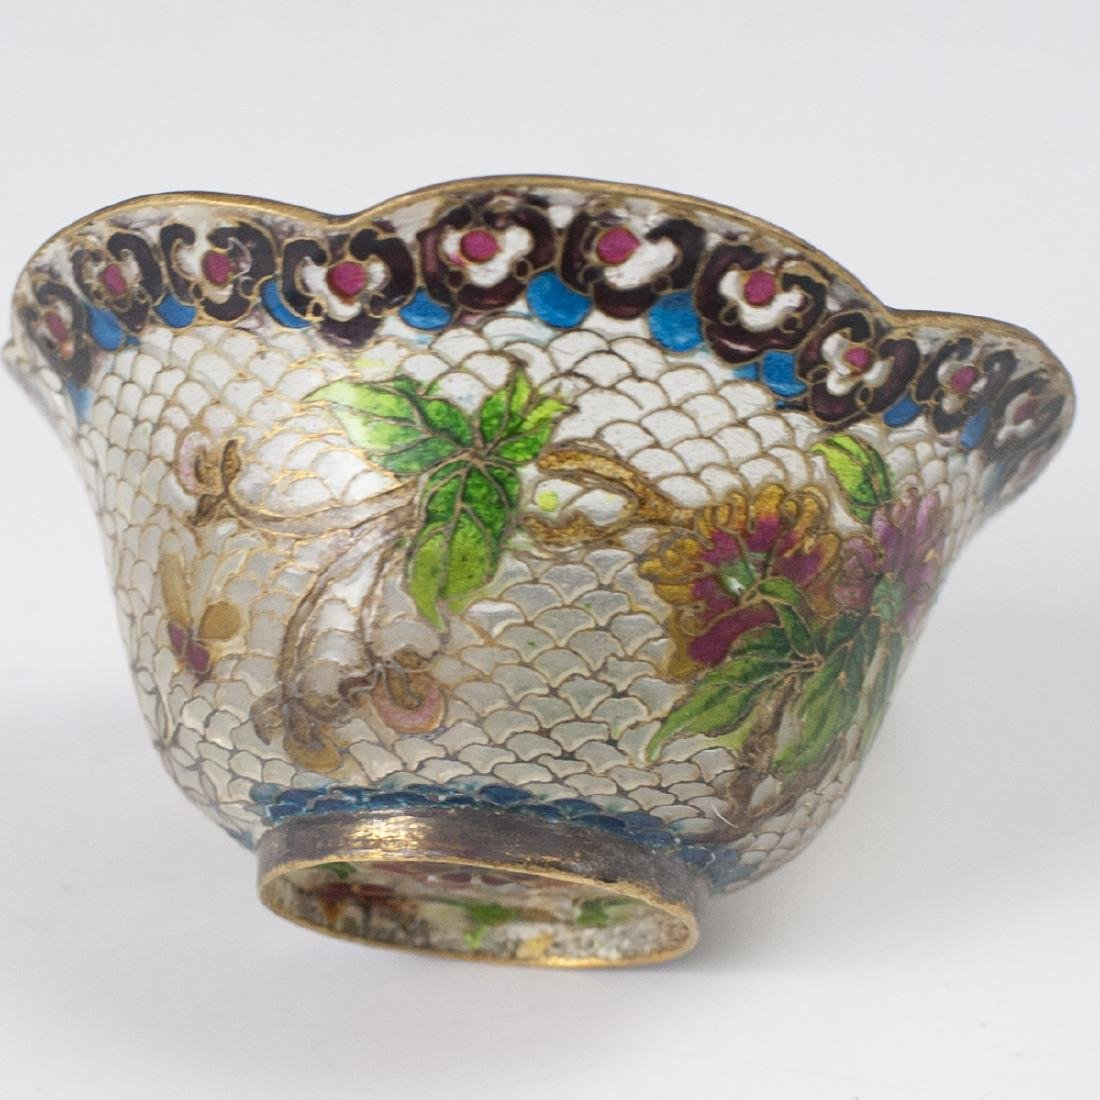 Chinese Plique a Jour Diminutive Bowl - 3